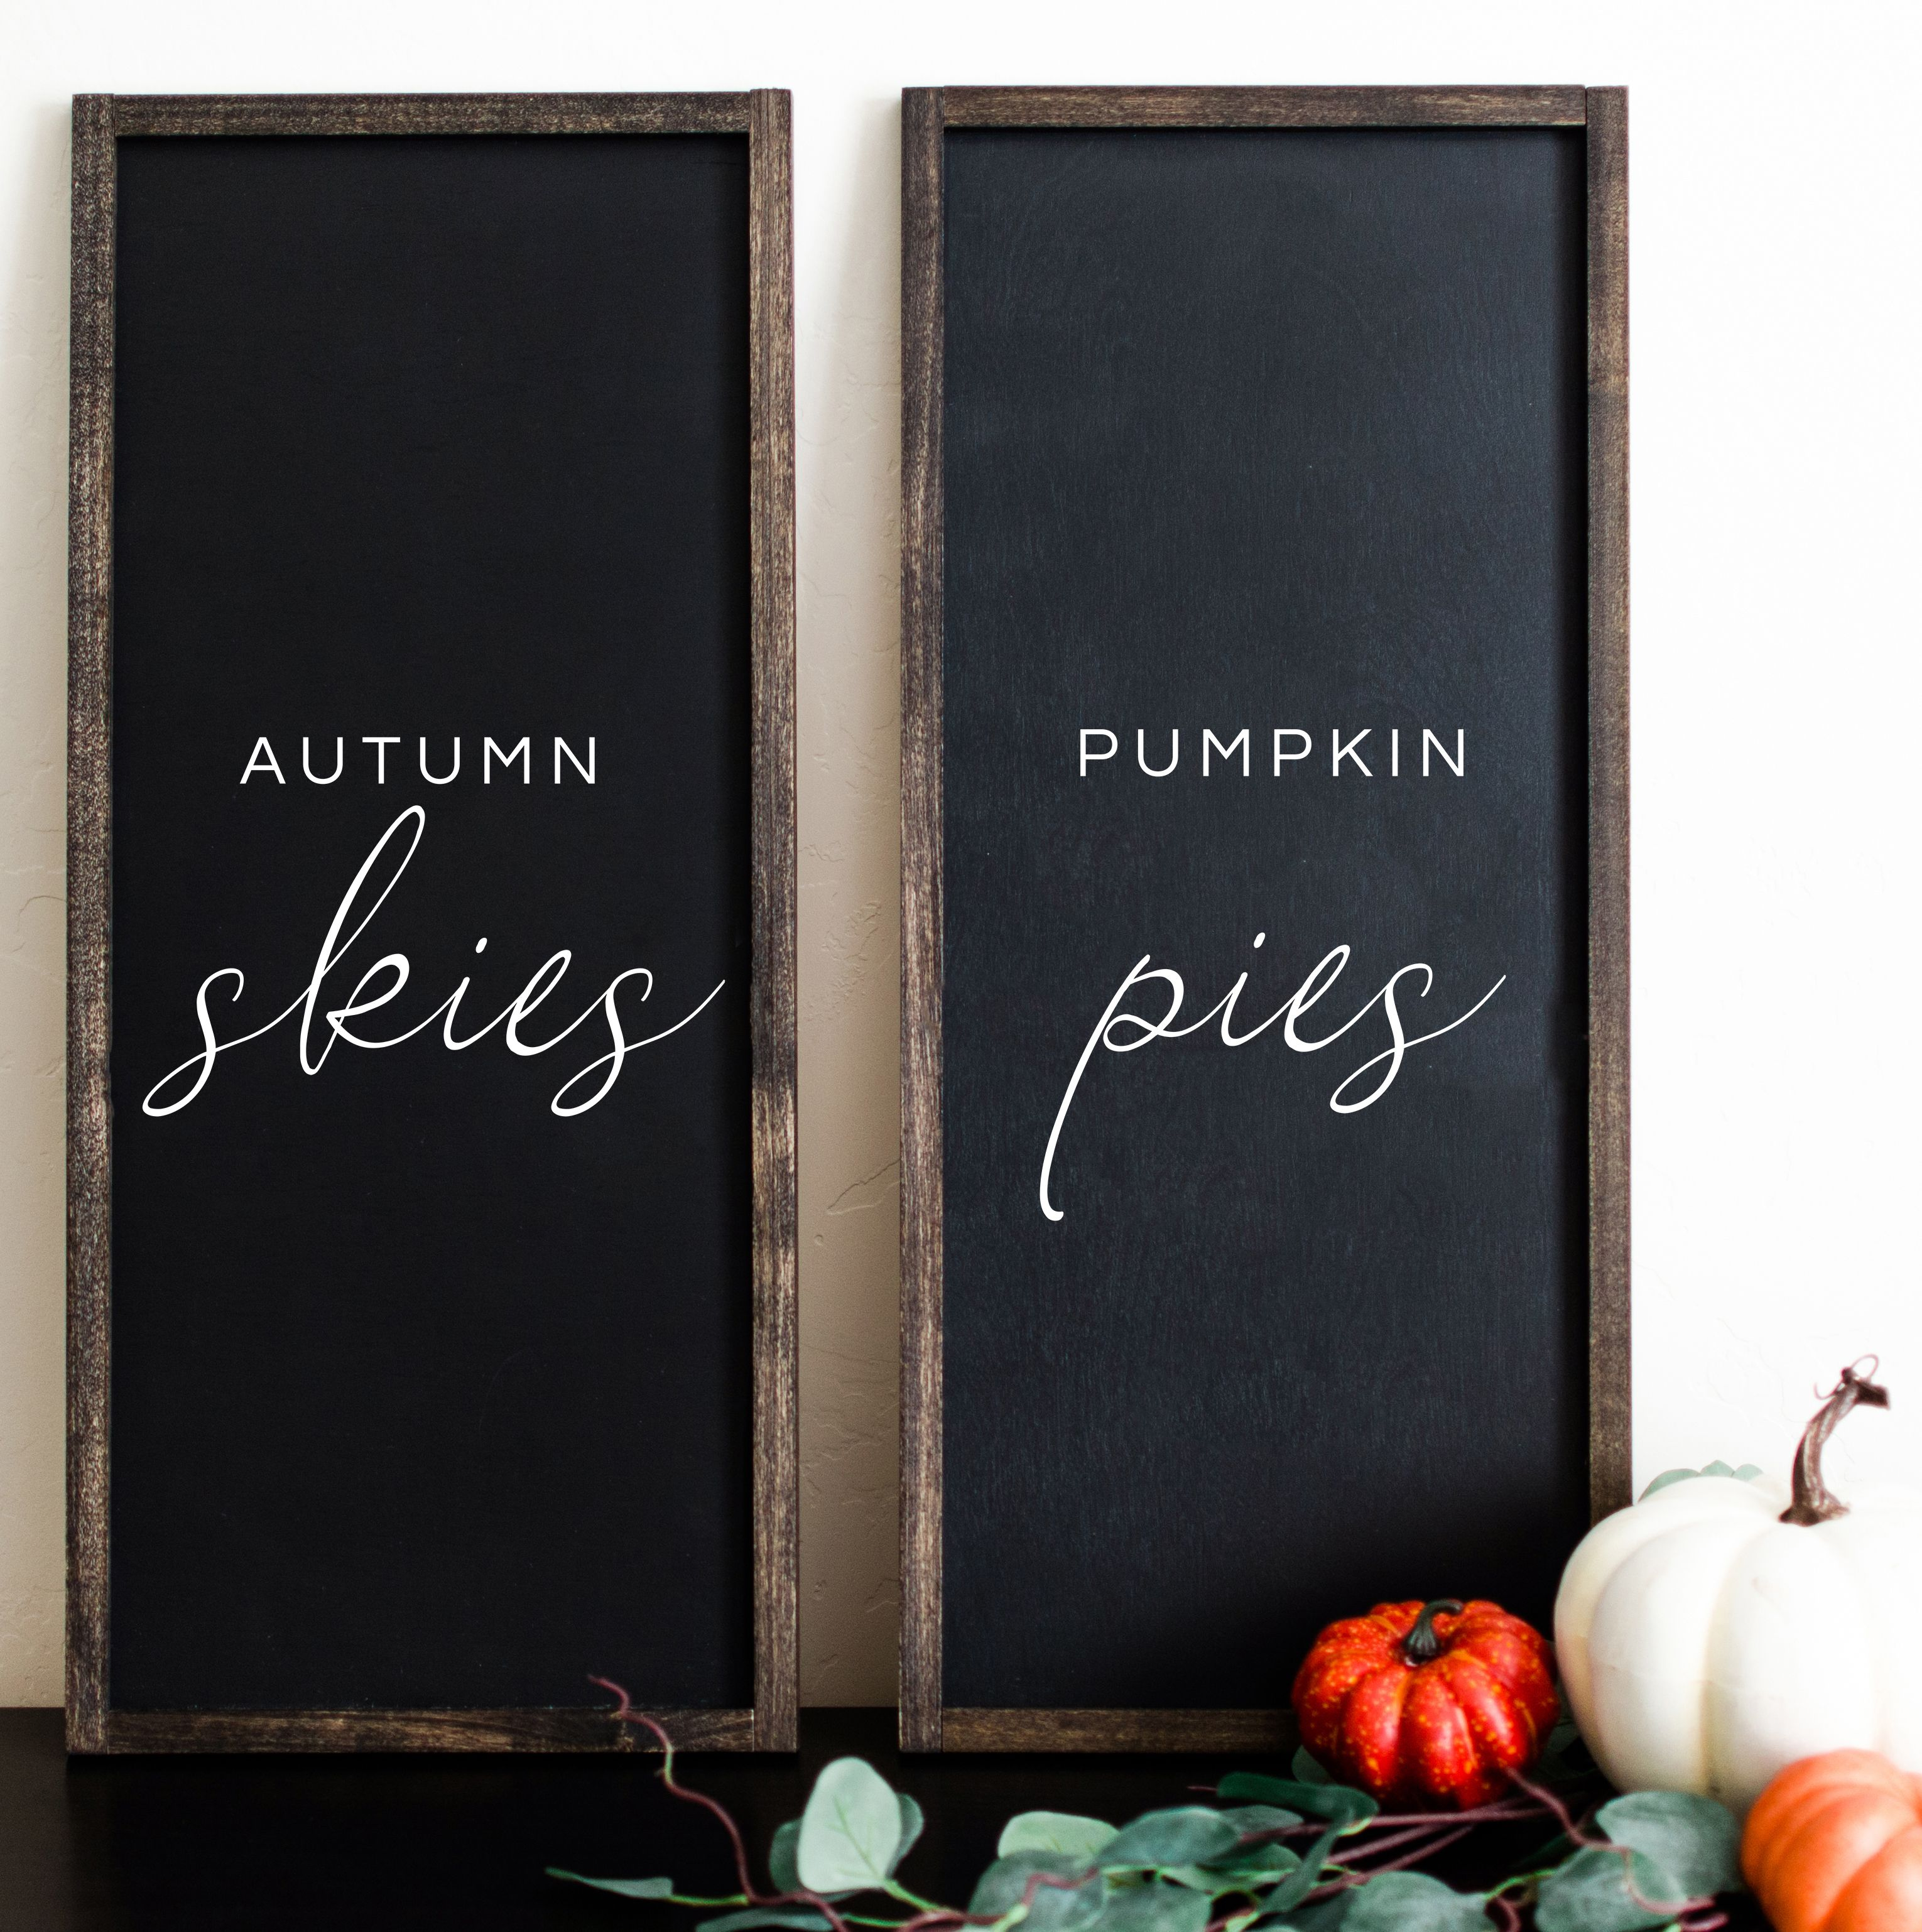 Fall Wood Signs | Fall Wood Sign Duo | Fall Wooden Sign  Autumn Skies and Pumpkin Pies